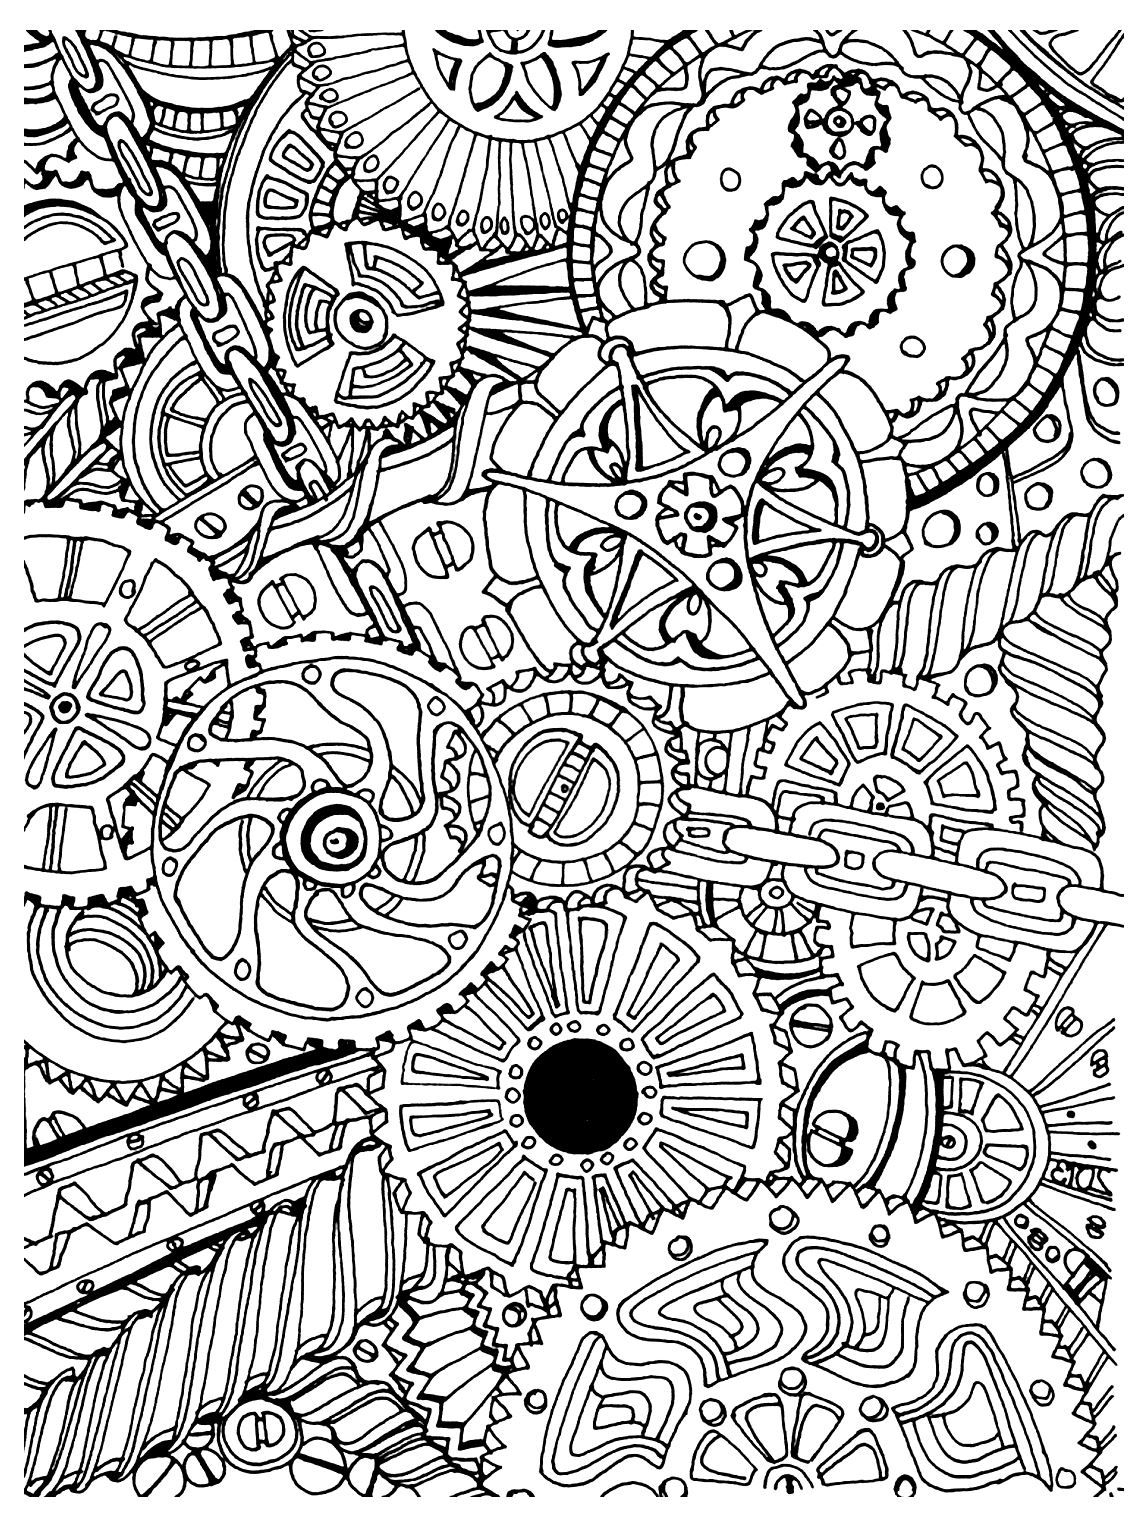 Steampunk Gears Coloring Pages  Gallery 17s - To print for your project